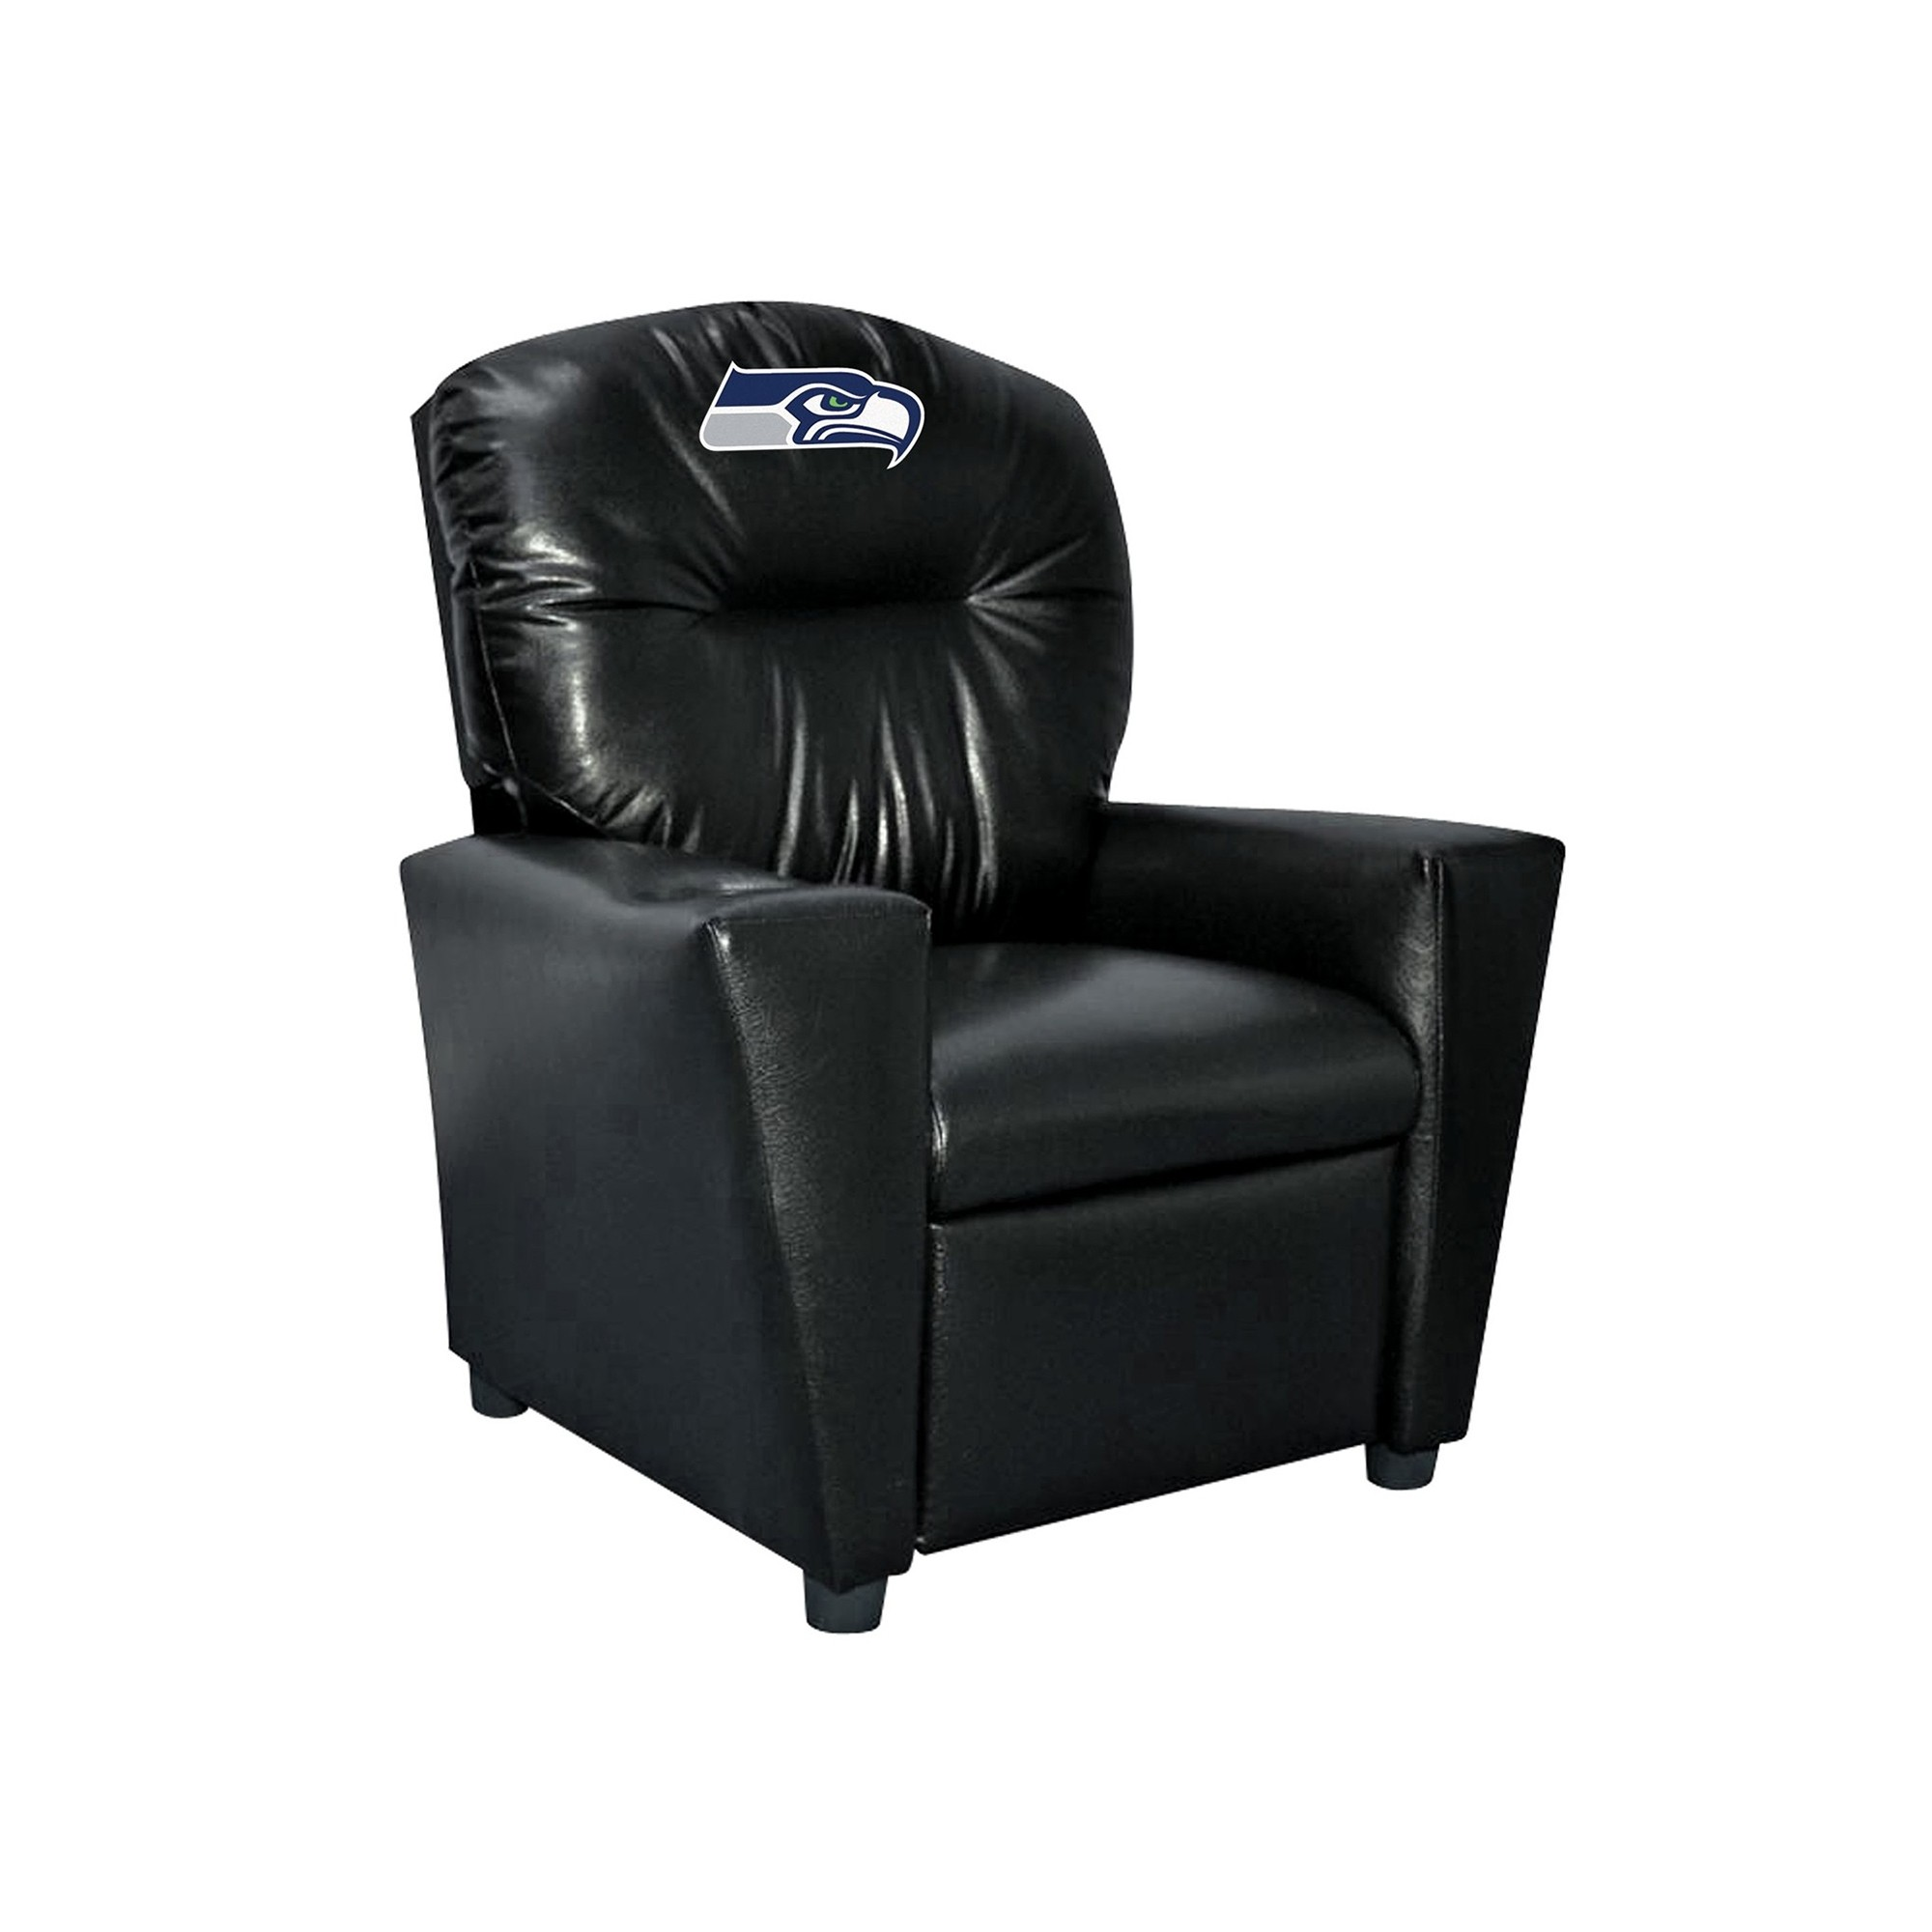 Seattle Seahawks Kids Faux Leather Recliner - 107-1024 - Nfl Football Seattle Seahawks Kids Dish Sets 107-1024